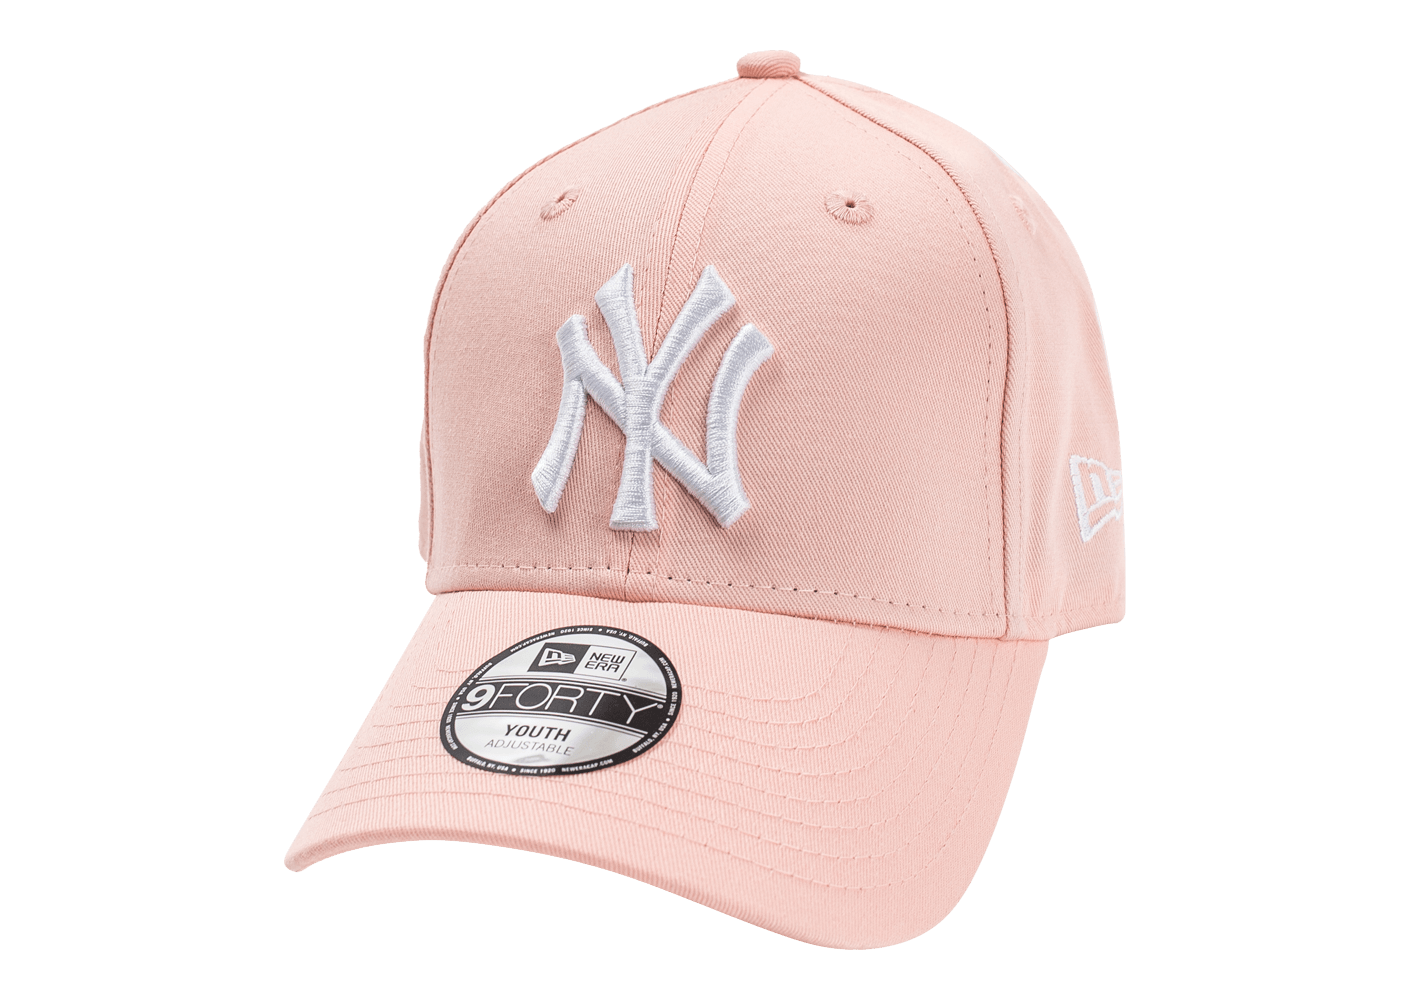 casquette ny femme chausport